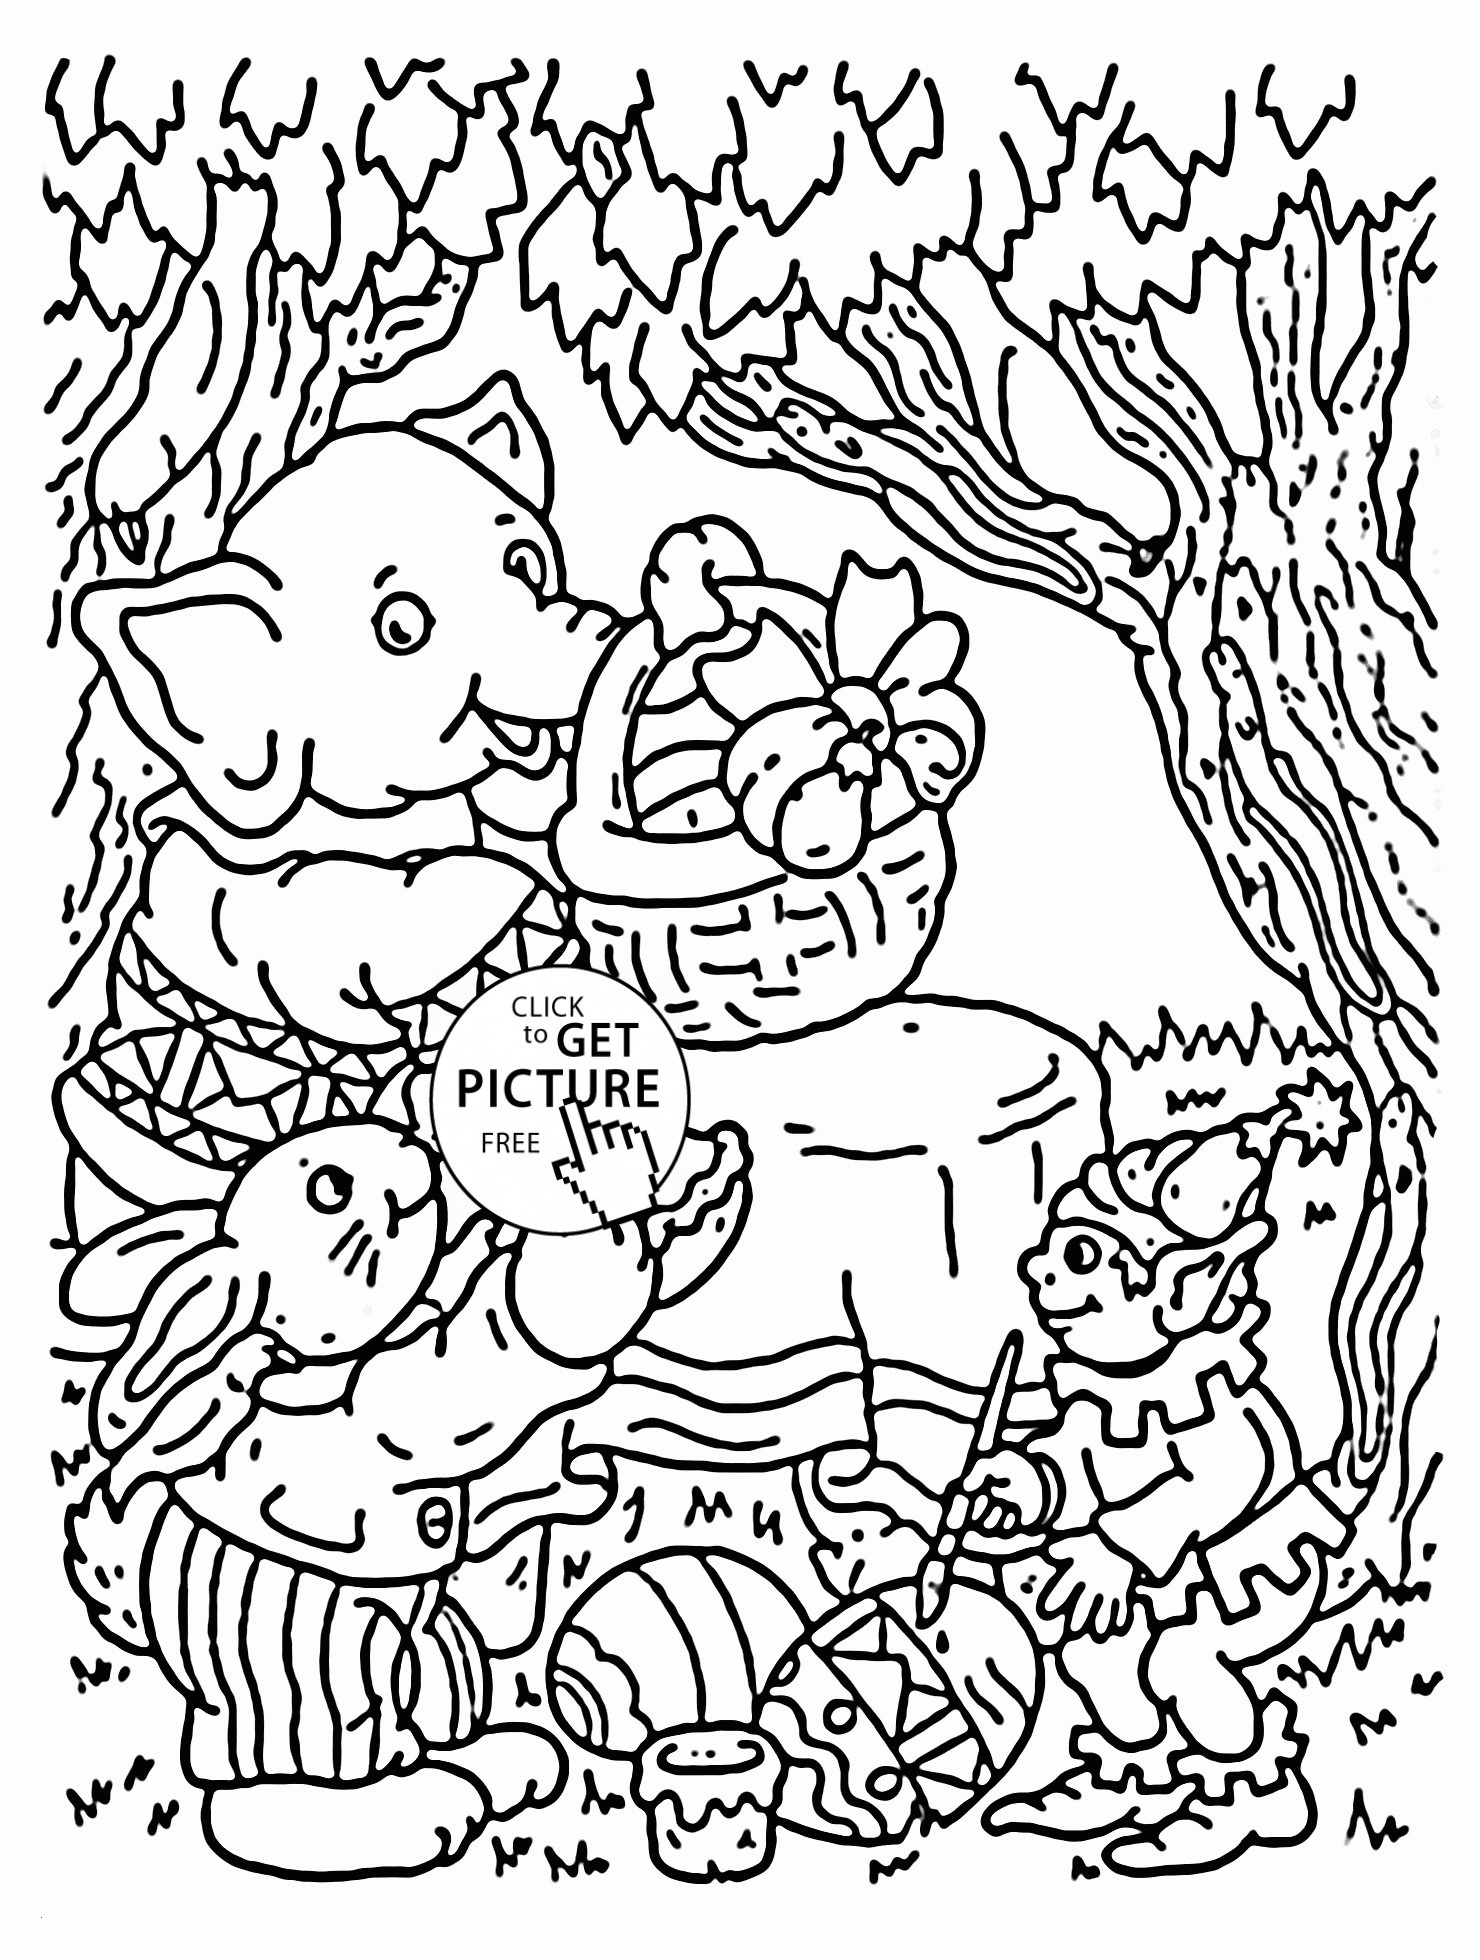 train coloring pages printable free Download-Train Car Coloring Pages Brilliant Train Coloring Sheets Letramac 1-g